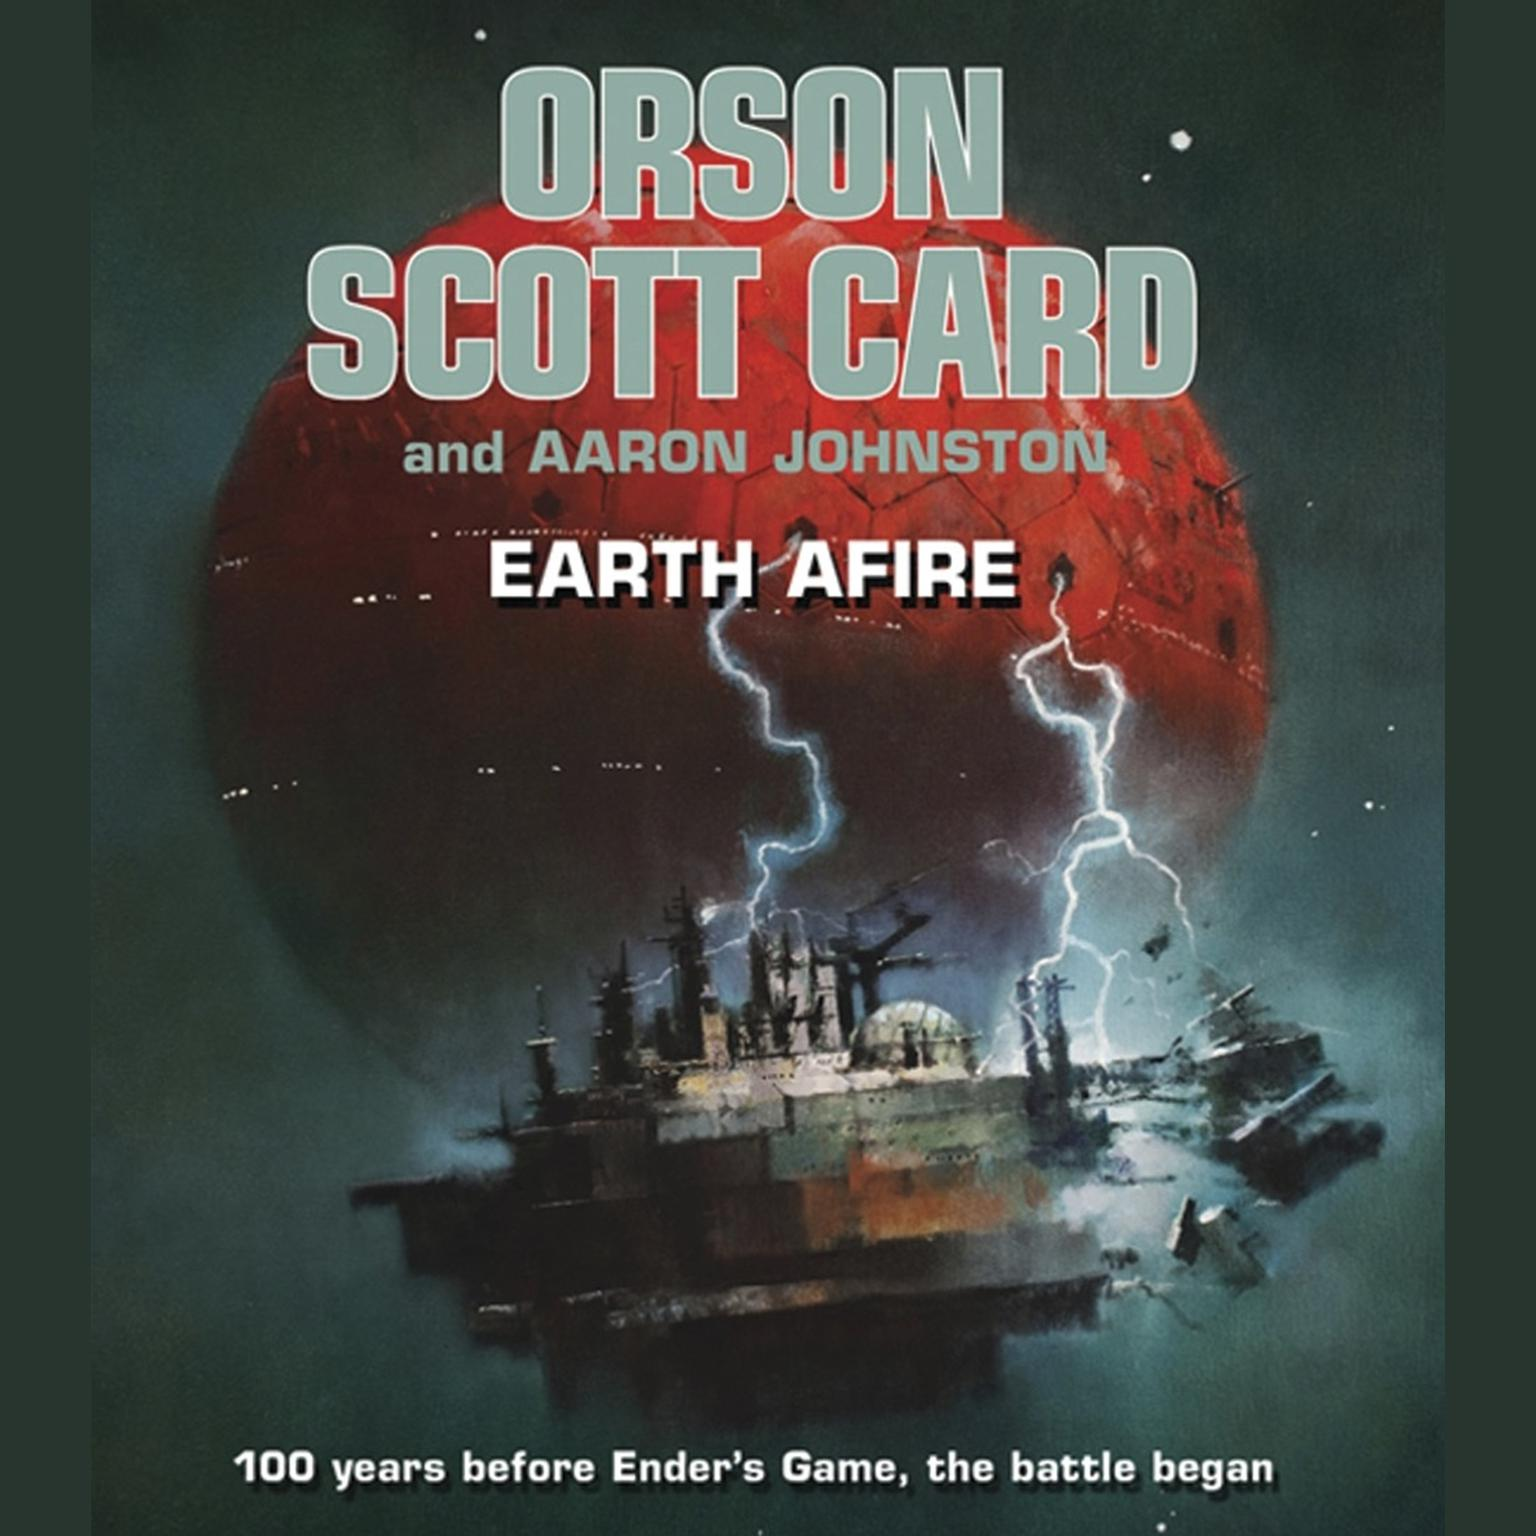 Download Earth Afire Audiobook By Orson Scott Card For